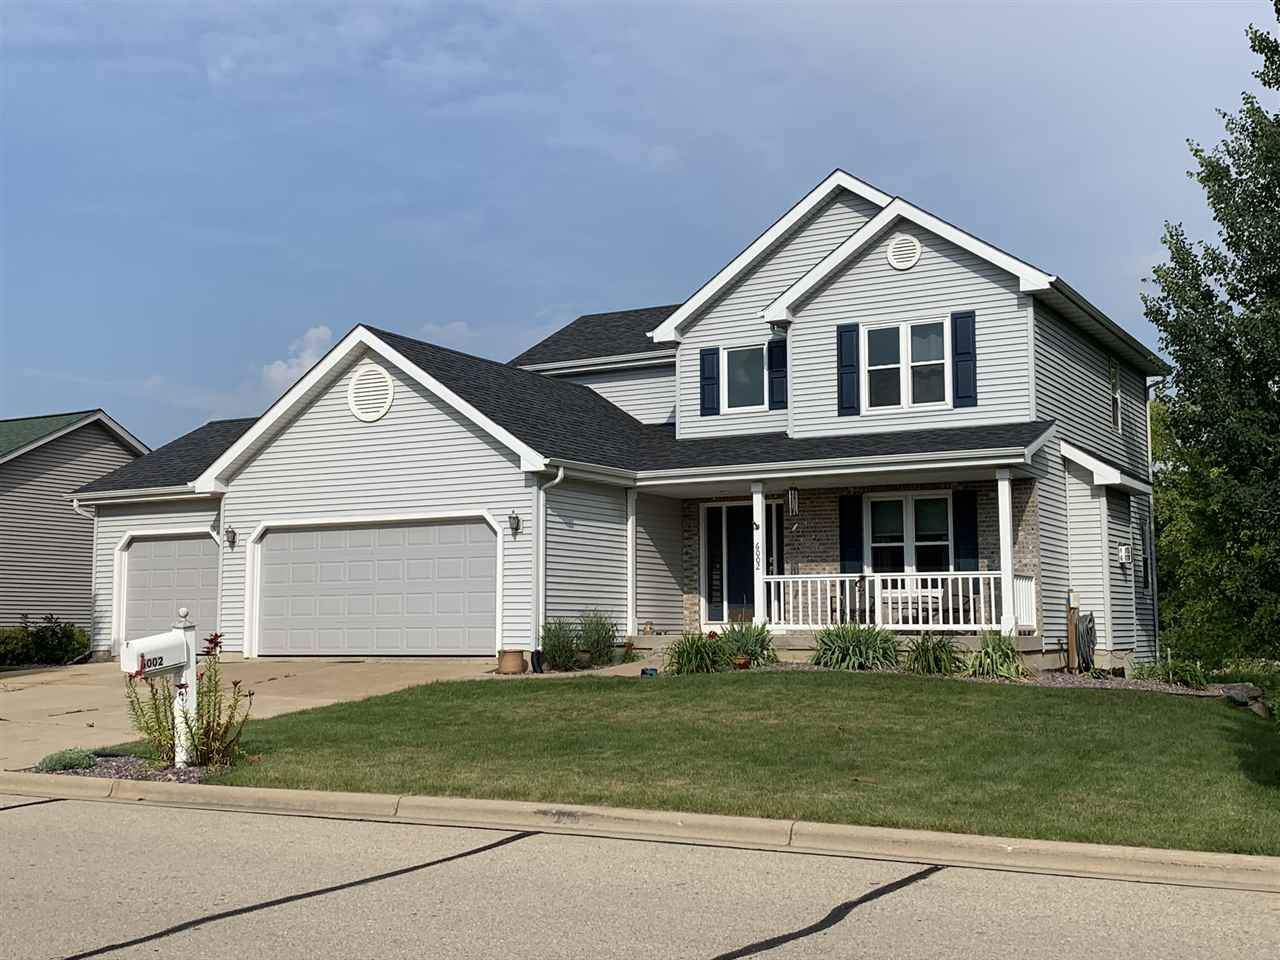 6002 Laufenberg Blvd, Cross Plains, WI 53528 - #: 1888717